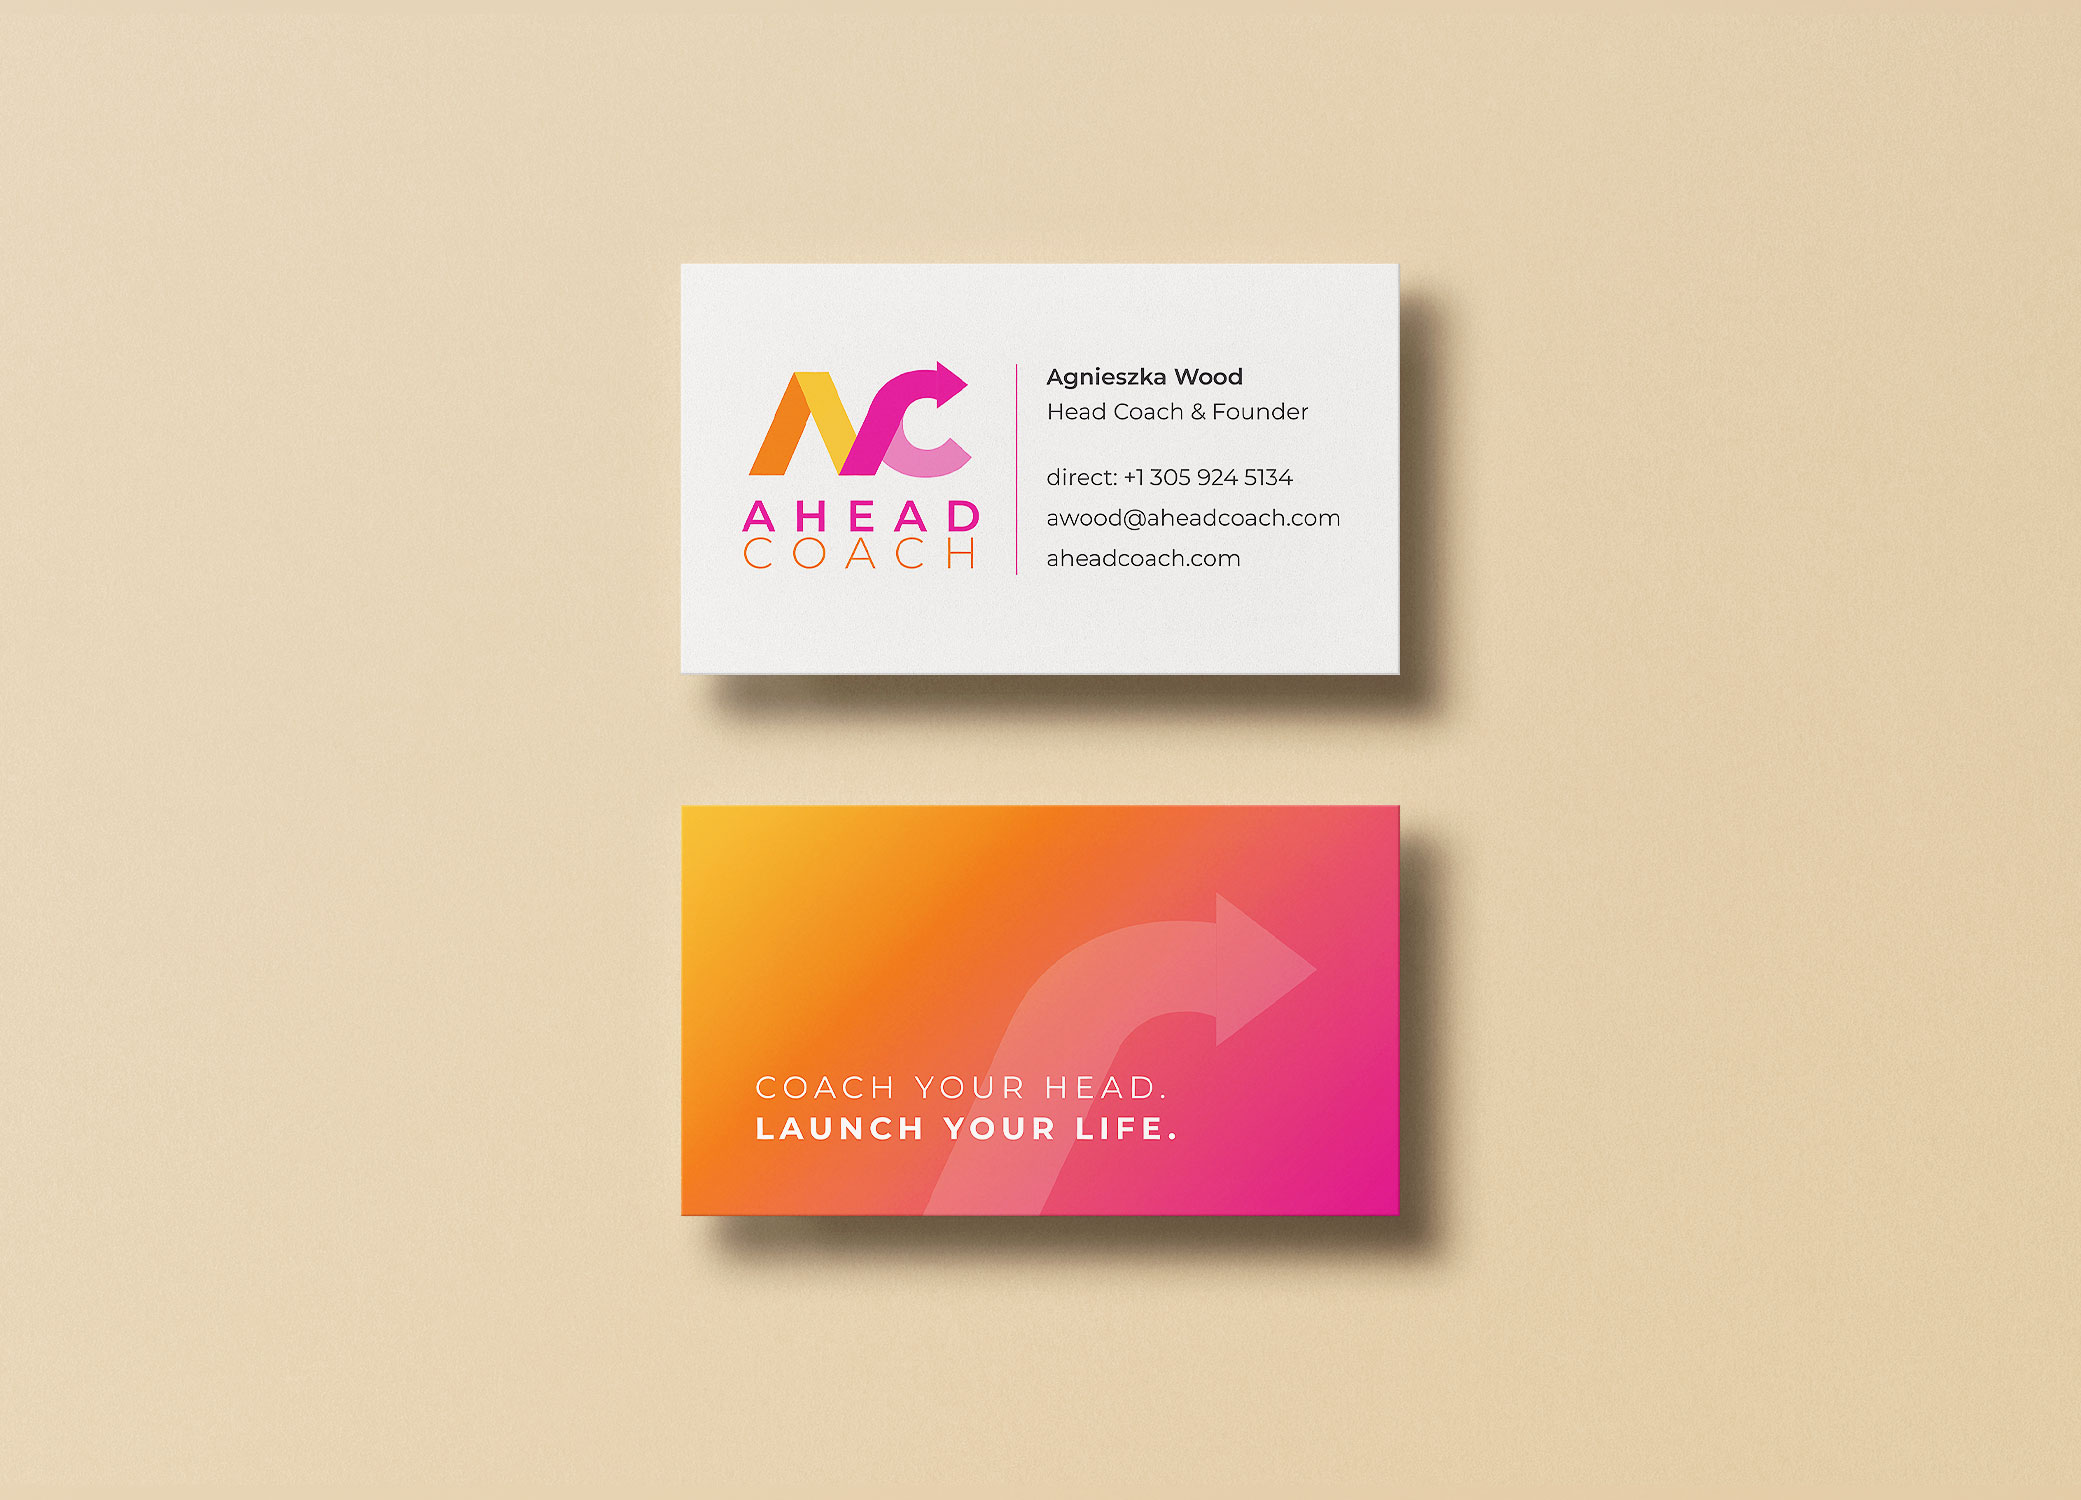 Ahead Coach business cards arranged in 2 stacks showing front and back view.